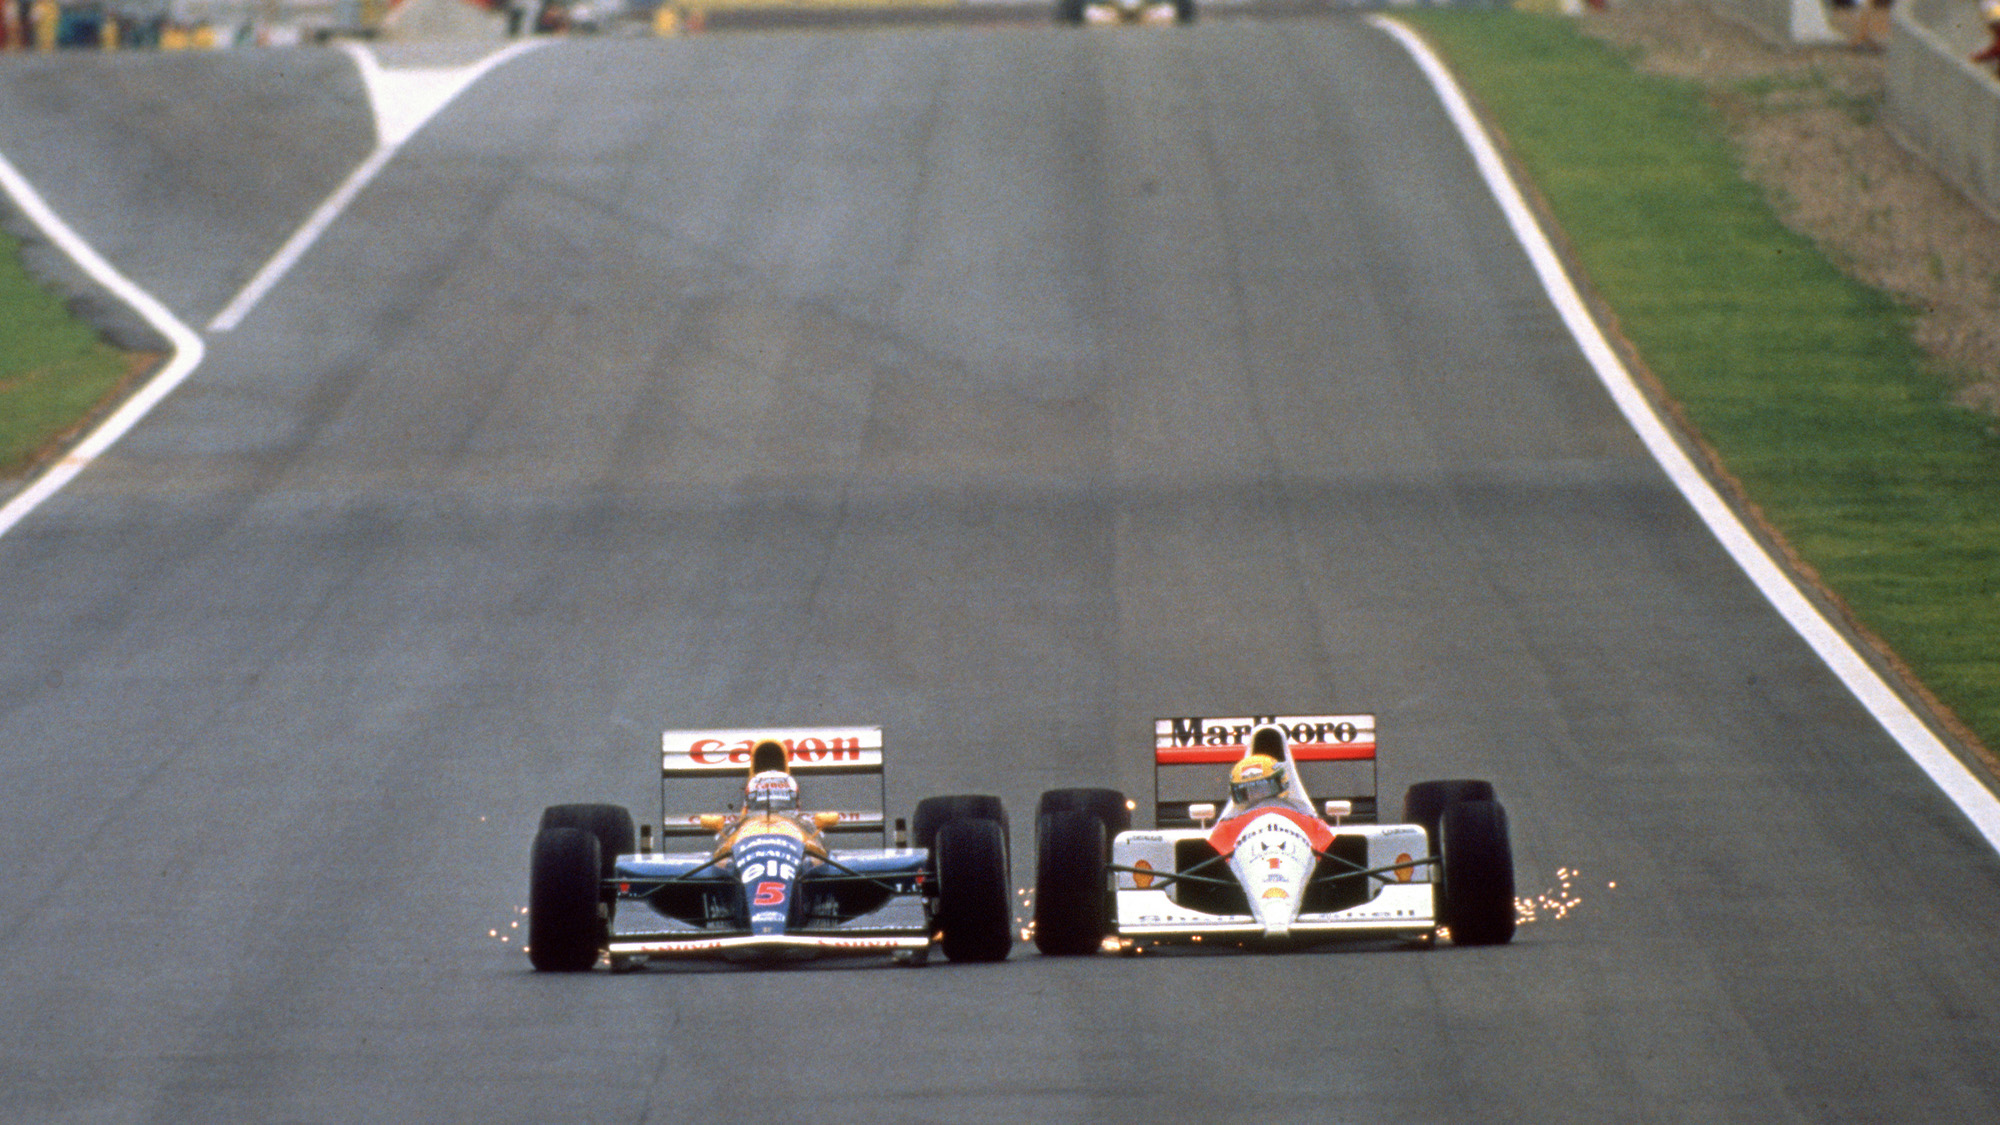 Nigel Mansell and Ayrton Senna are side by side with sparks flying during the 1991 Spanish Grand Prix